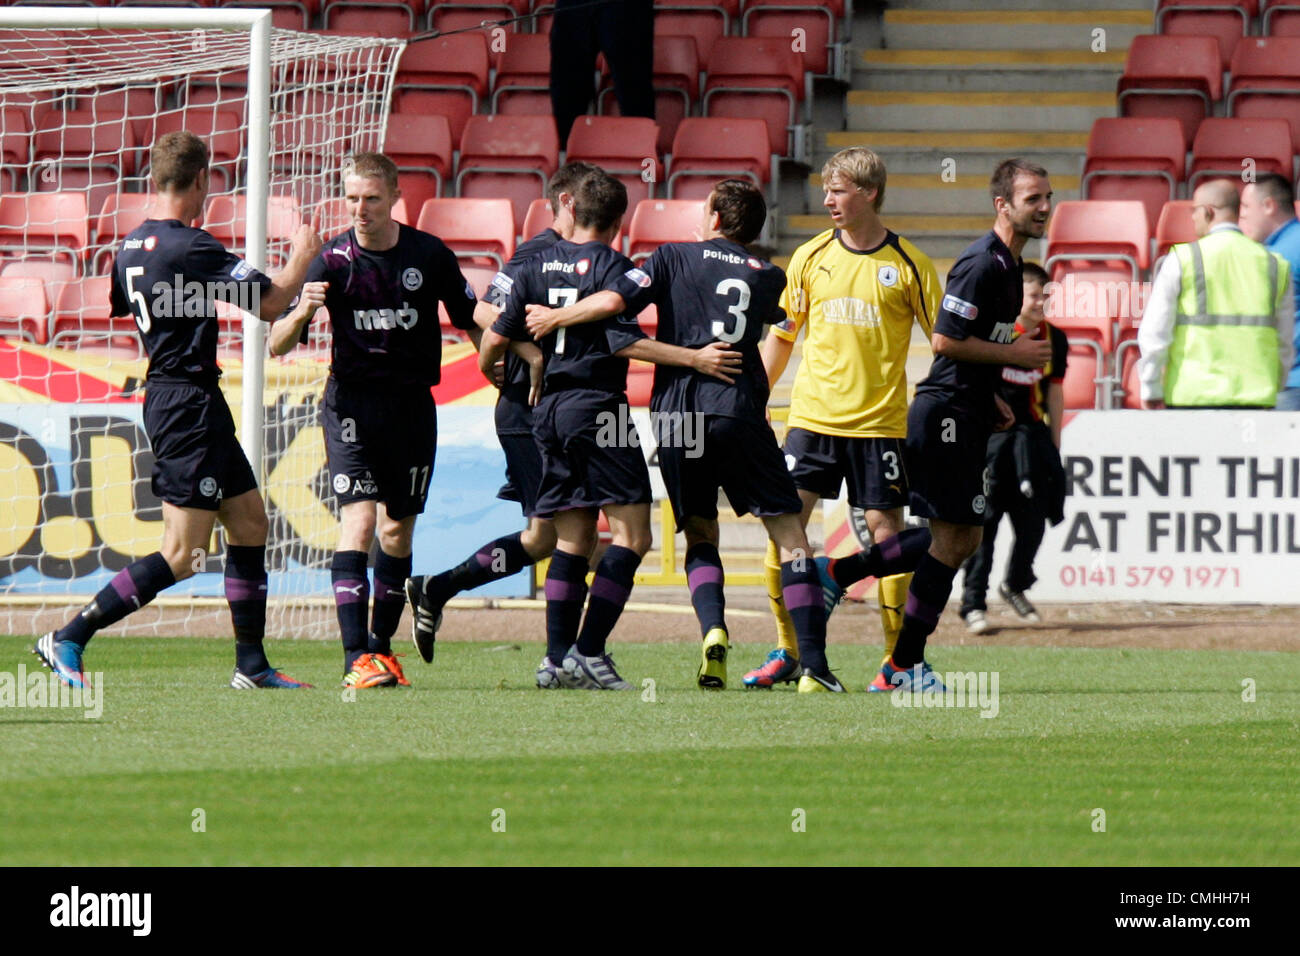 11th Aug 2012. 11.08.2012 Glasgow, Scotland.  Partick celebrate scoring their second goal during the Scottish Football - Stock Image